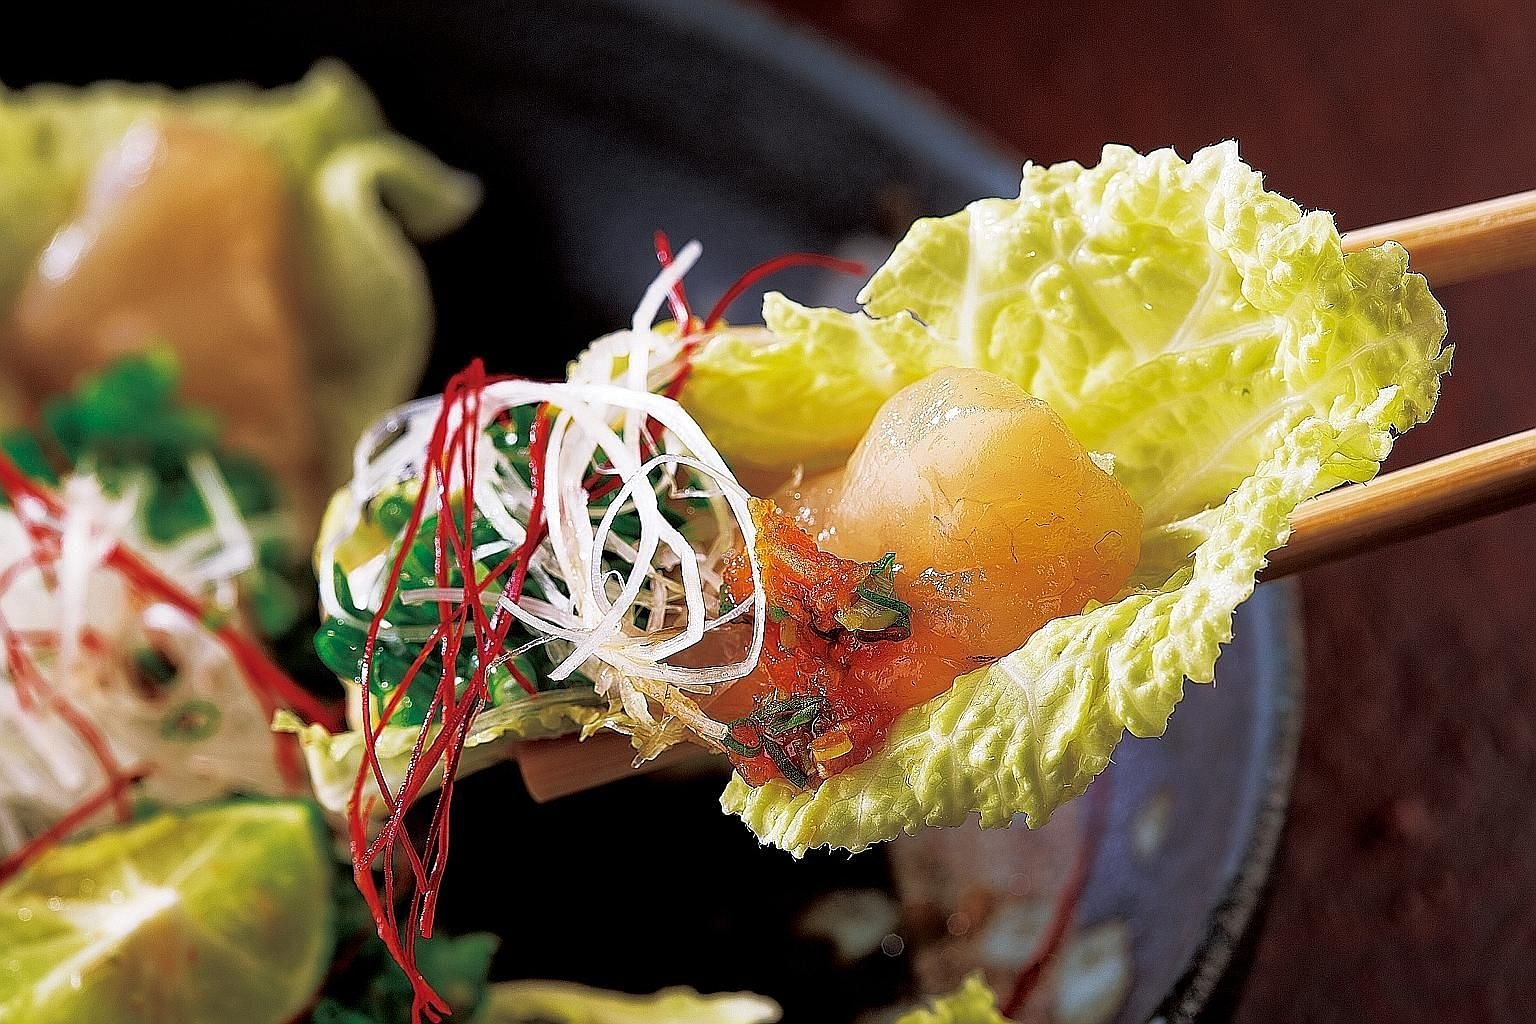 Tender pieces of fish in Thick Sliced Puffer Fish Sashimi. Order the Deep Fried Puffer Fish to supplement your main course.